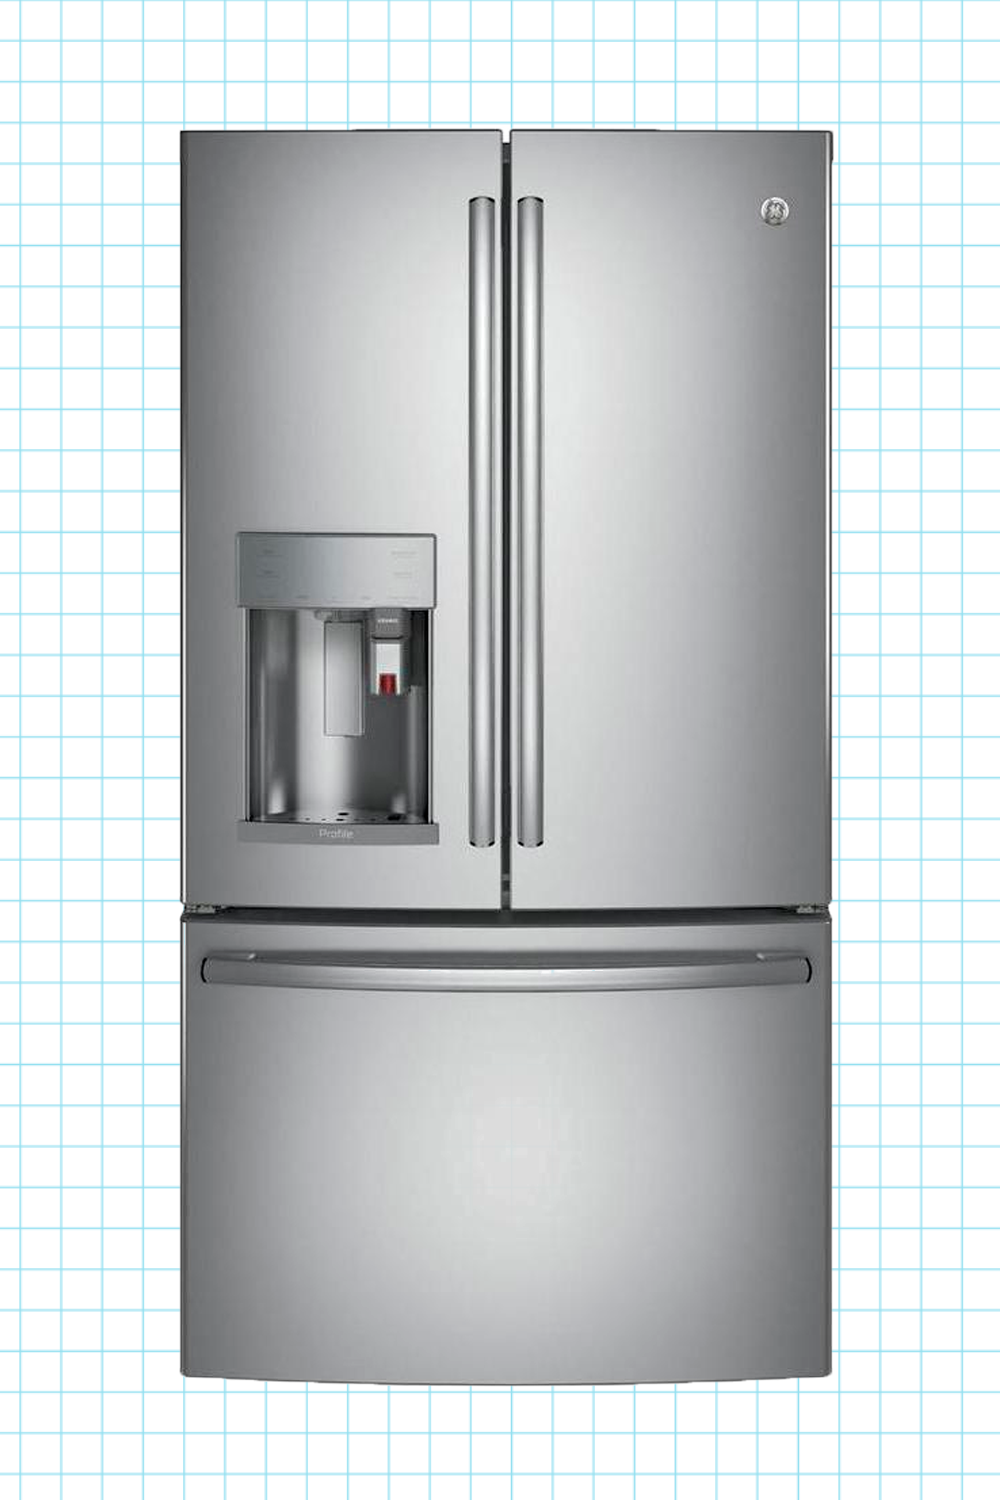 7 Best Counter Depth Refrigerators To Buy In 2019, Reviewed By Kitchen  Appliance Experts